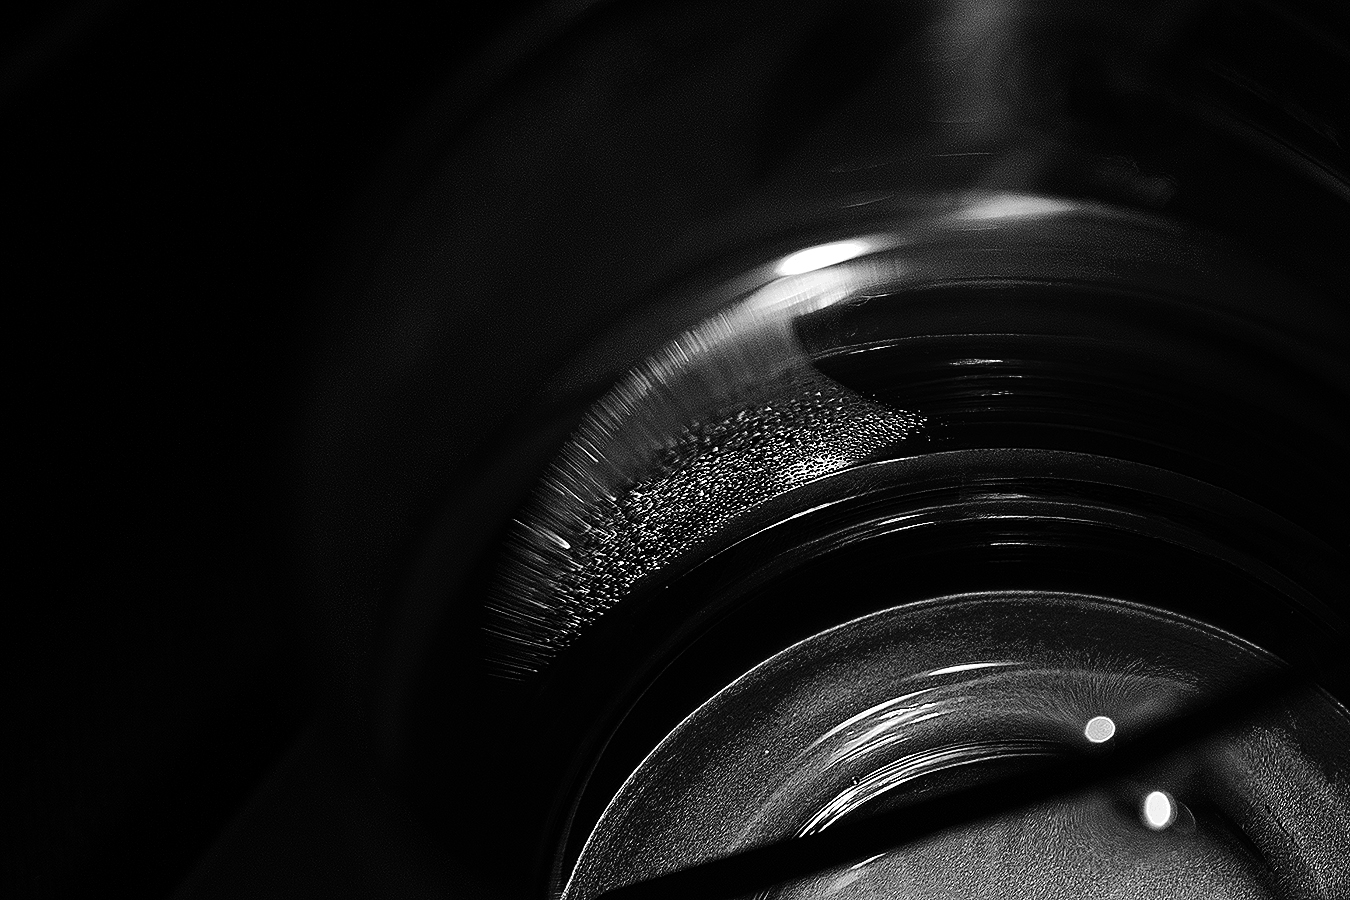 Linda_Ruan_still_life_black_and_white_photography_water_glass_abstraction